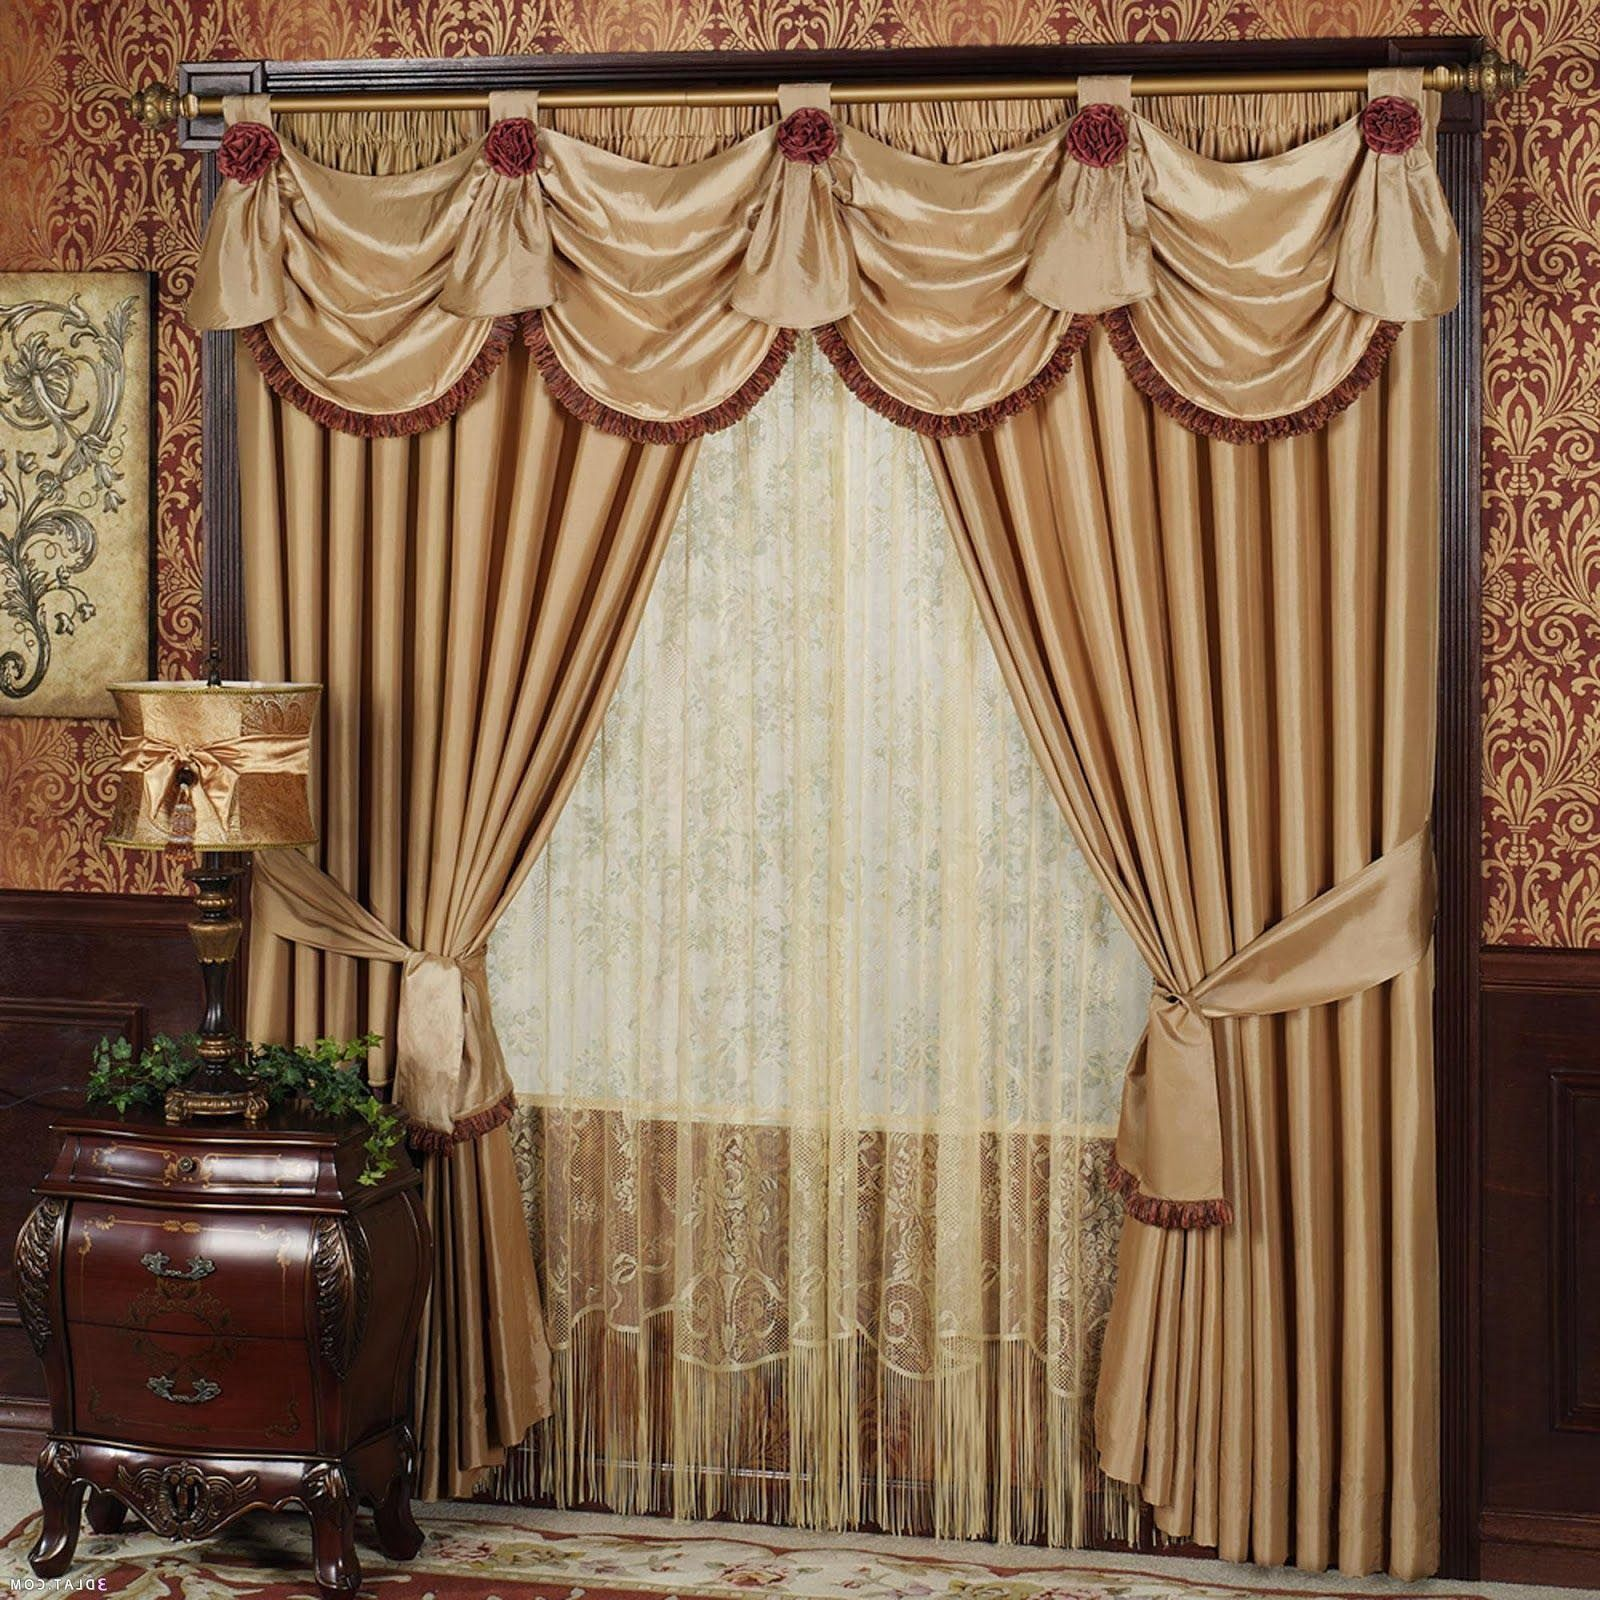 bedrooms decoration valance window living collection including for rich bedroom curtain room images with pictures valances drapery curtains trends